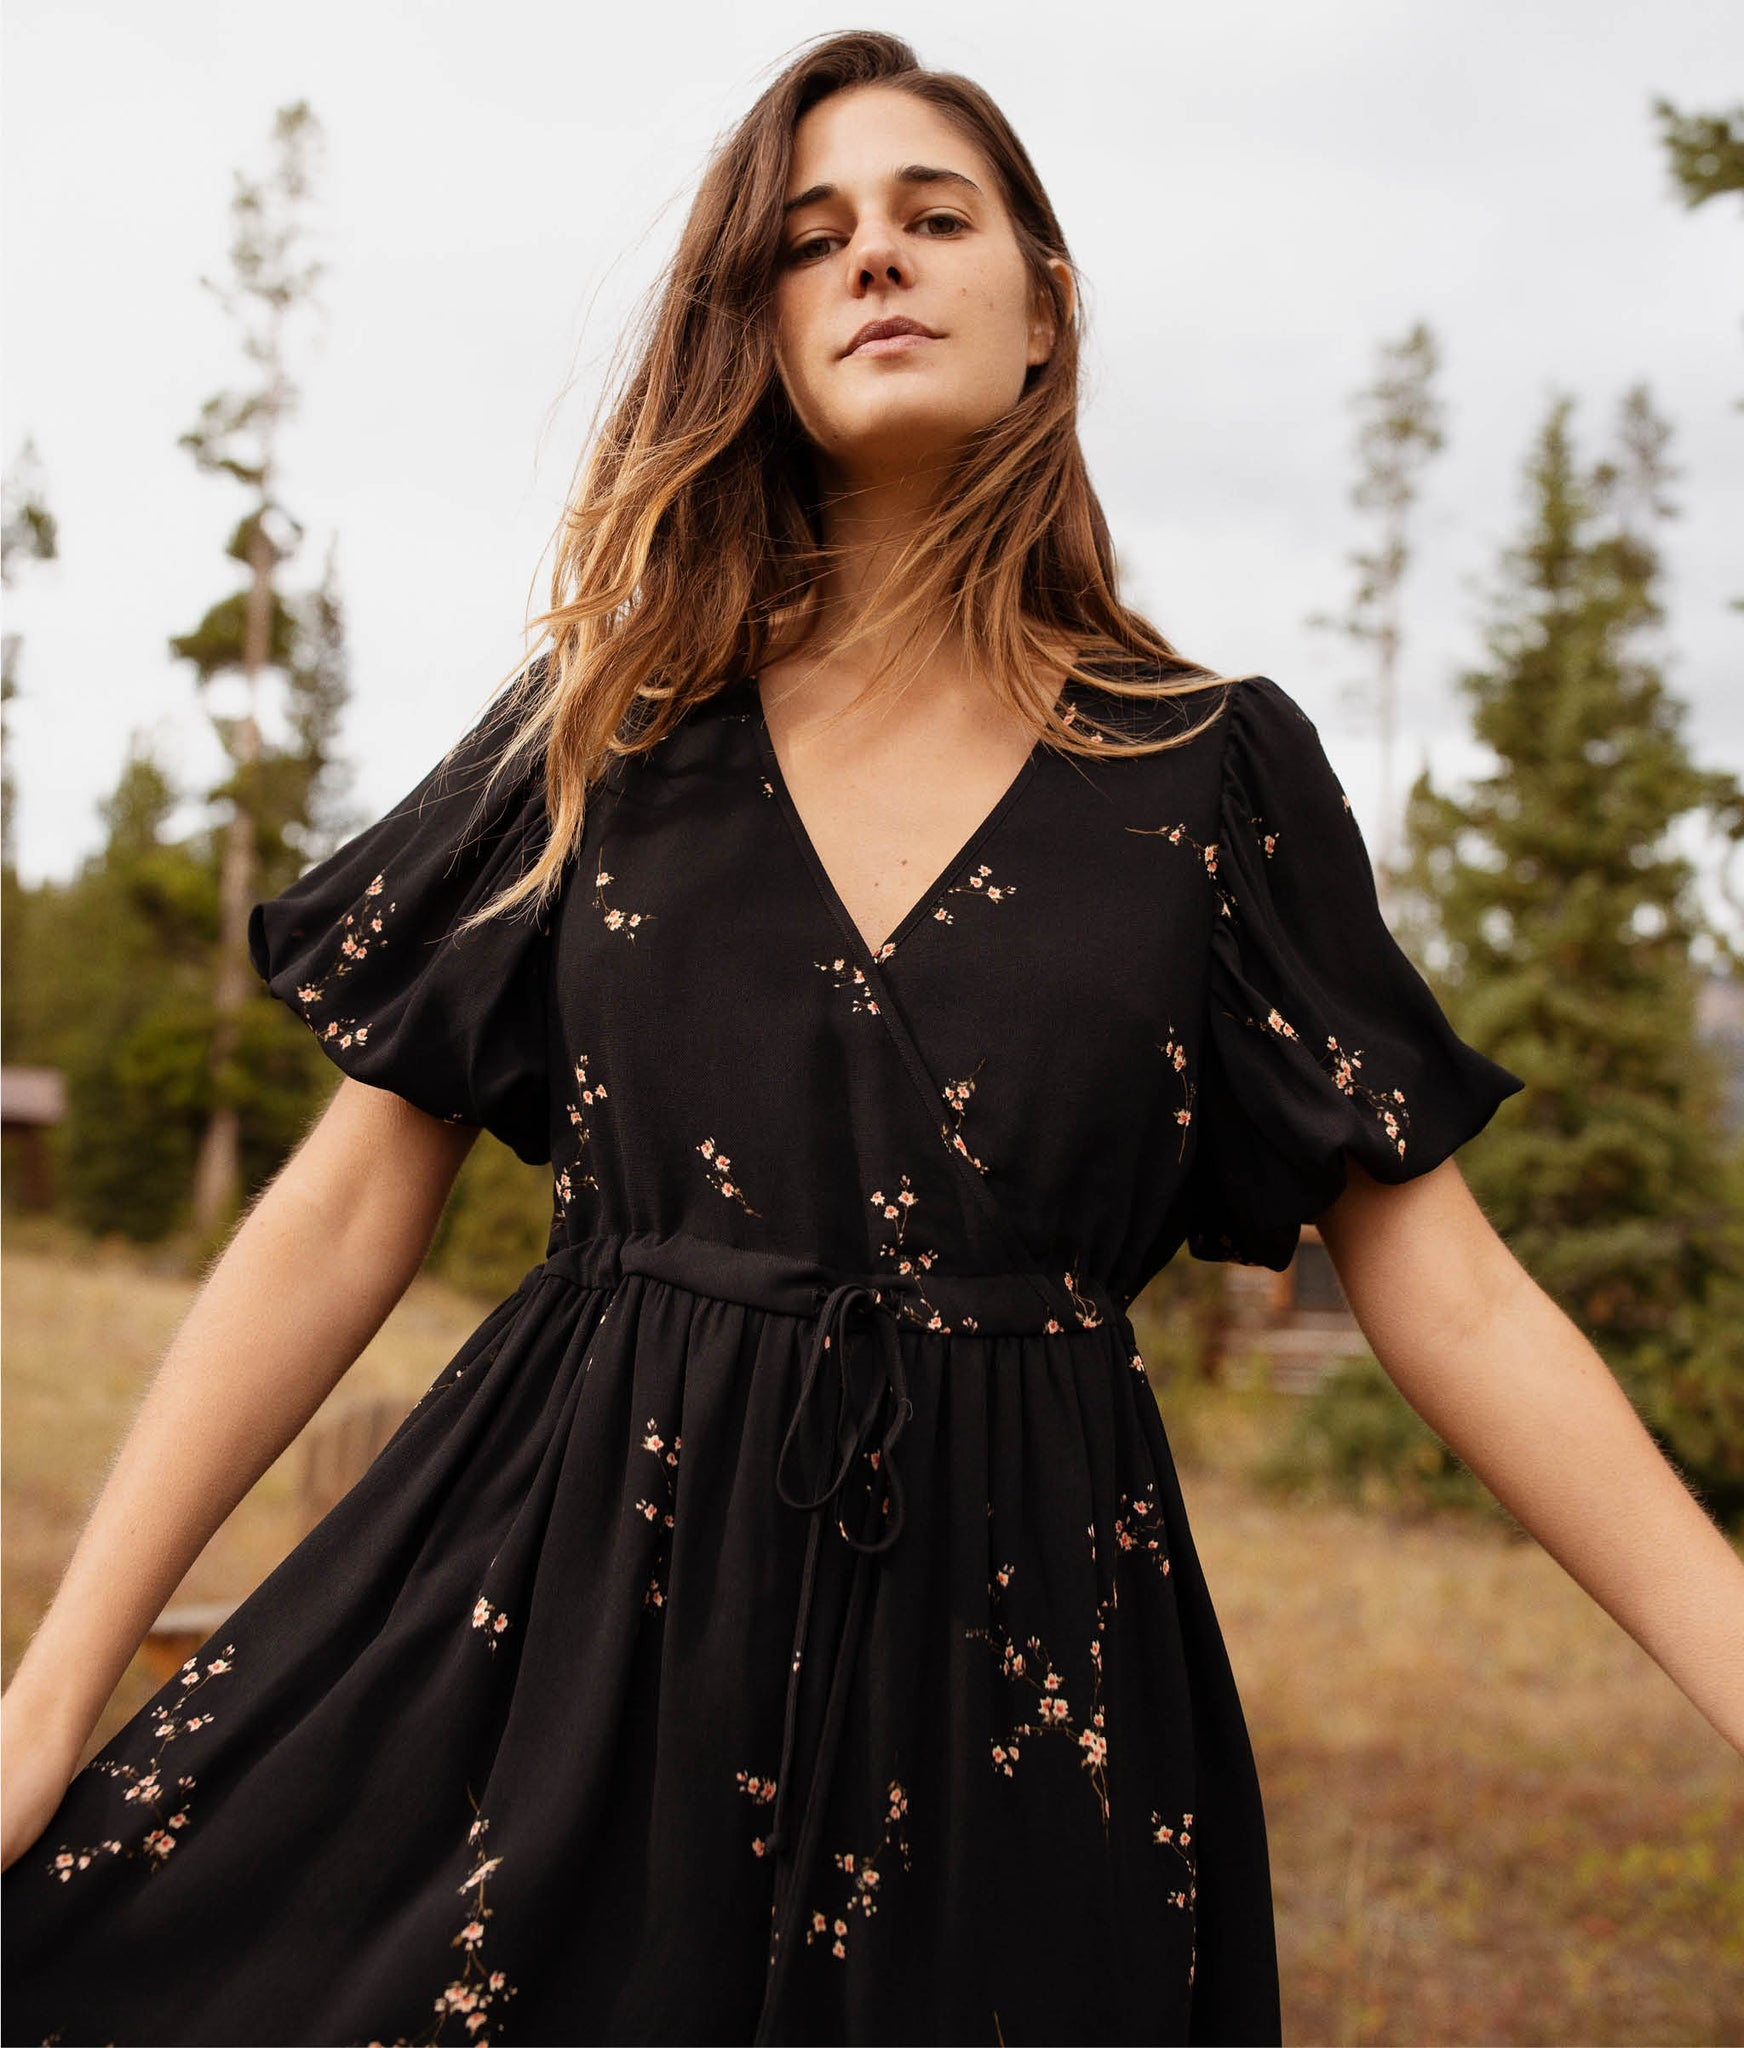 The Dahlia Dress | Pear Blossom